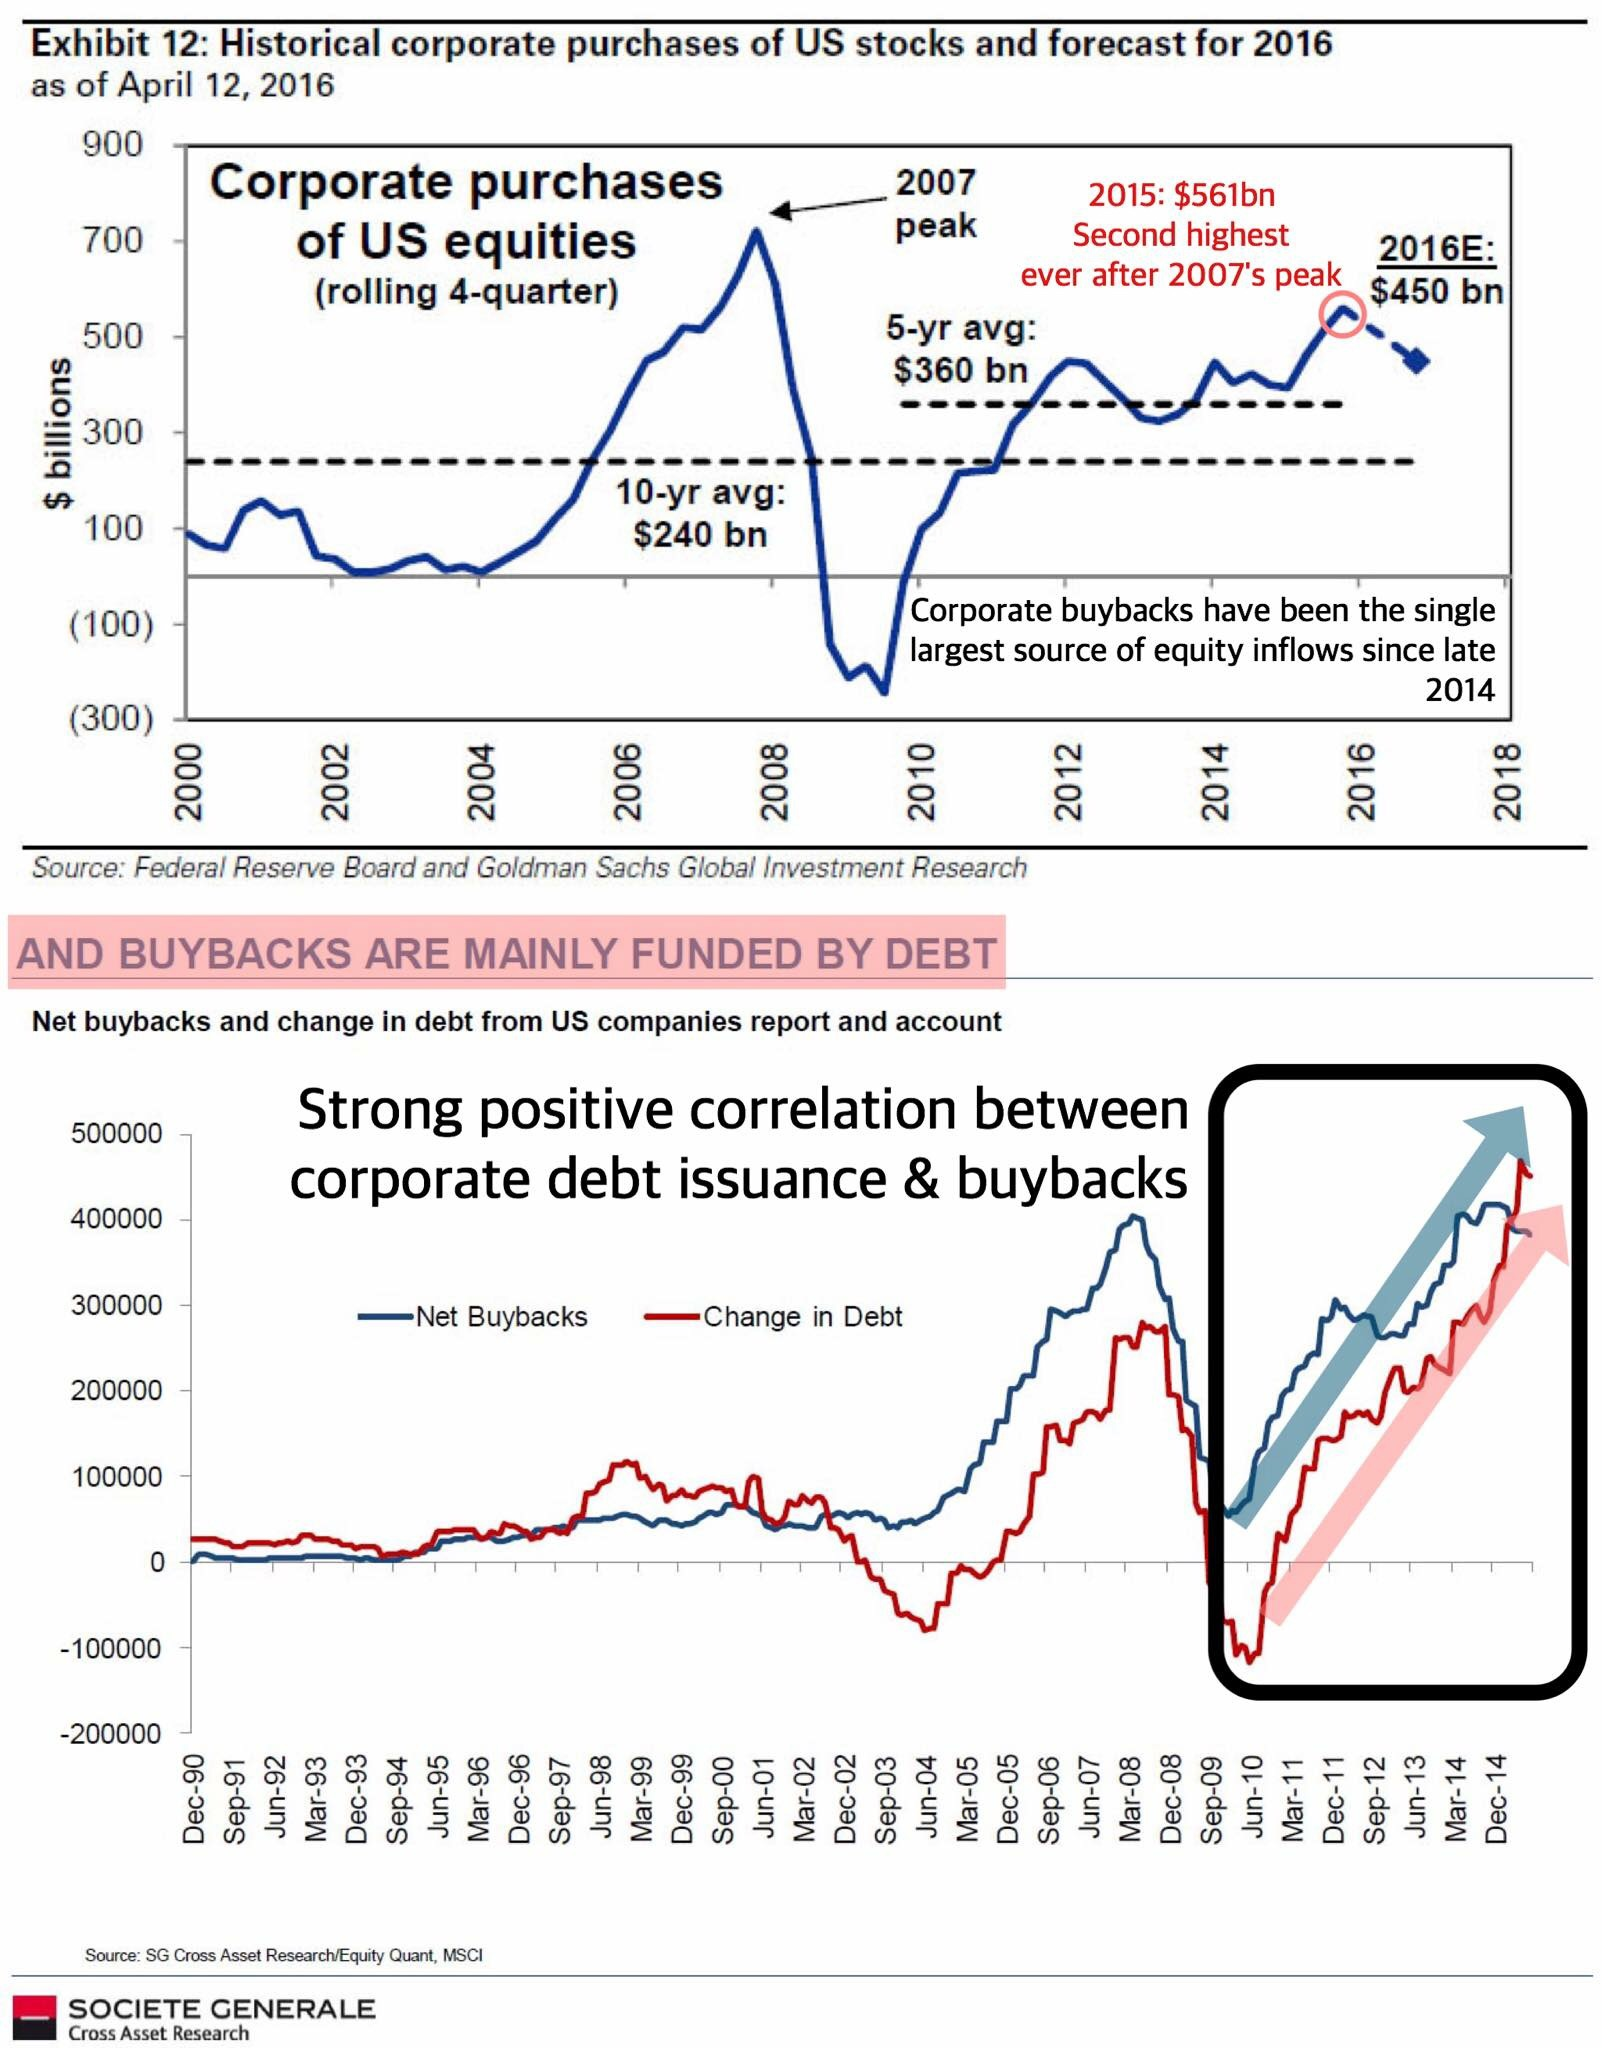 """""""We know that both smart money and retail money have been net sellers of U.S. equities for a good part of the last 6 months or so, but stock prices haven't fallen much if at all (ignoring the 2 volatility flares in August 2015, and in January 206). So who has been buying?    Simple: None other then the corporations themselves, share buybacks as they are called.    We have spoken a lot about this trend already but based on the latest EPFR data, Goldman has provided us with lots of clarity as to how much shares corporations have been repurchasing (with the guise of creating shareholder value by bolstering stock prices).    From Goldman:    """"Corporations purchased $561 billion of US equities during 2015, 40% higher than during 2014 ($401 billion) and the second highest level since at least 1952 ($721 billion in 2007). Managements remained committed to share repurchases (net of issuance) last year amidst modest US GDP growth of 2.4% and extended valuations. Outside of the Great Recession, corporates have been the primary source of US equity demand.    Buybacks will remain the key source of equity inflow in 2016.    We expect corporations will purchase $450 billion of US equities in 2016 and will remain the largest source of US equity demand. With the US economy expected to grow at a modest 2% pace and cash balances at high levels, firms are likely to continue to pursue buybacks as a means of generating shareholder value. We forecast S&P 500 EPS will rise by 9% to $110 this year from $100 in 2015 (see US Equity Views, March 14, 2016), which should also benefit allocation to buybacks.""""""""    Business Of Finance on Facebook, 16 April 2016"""